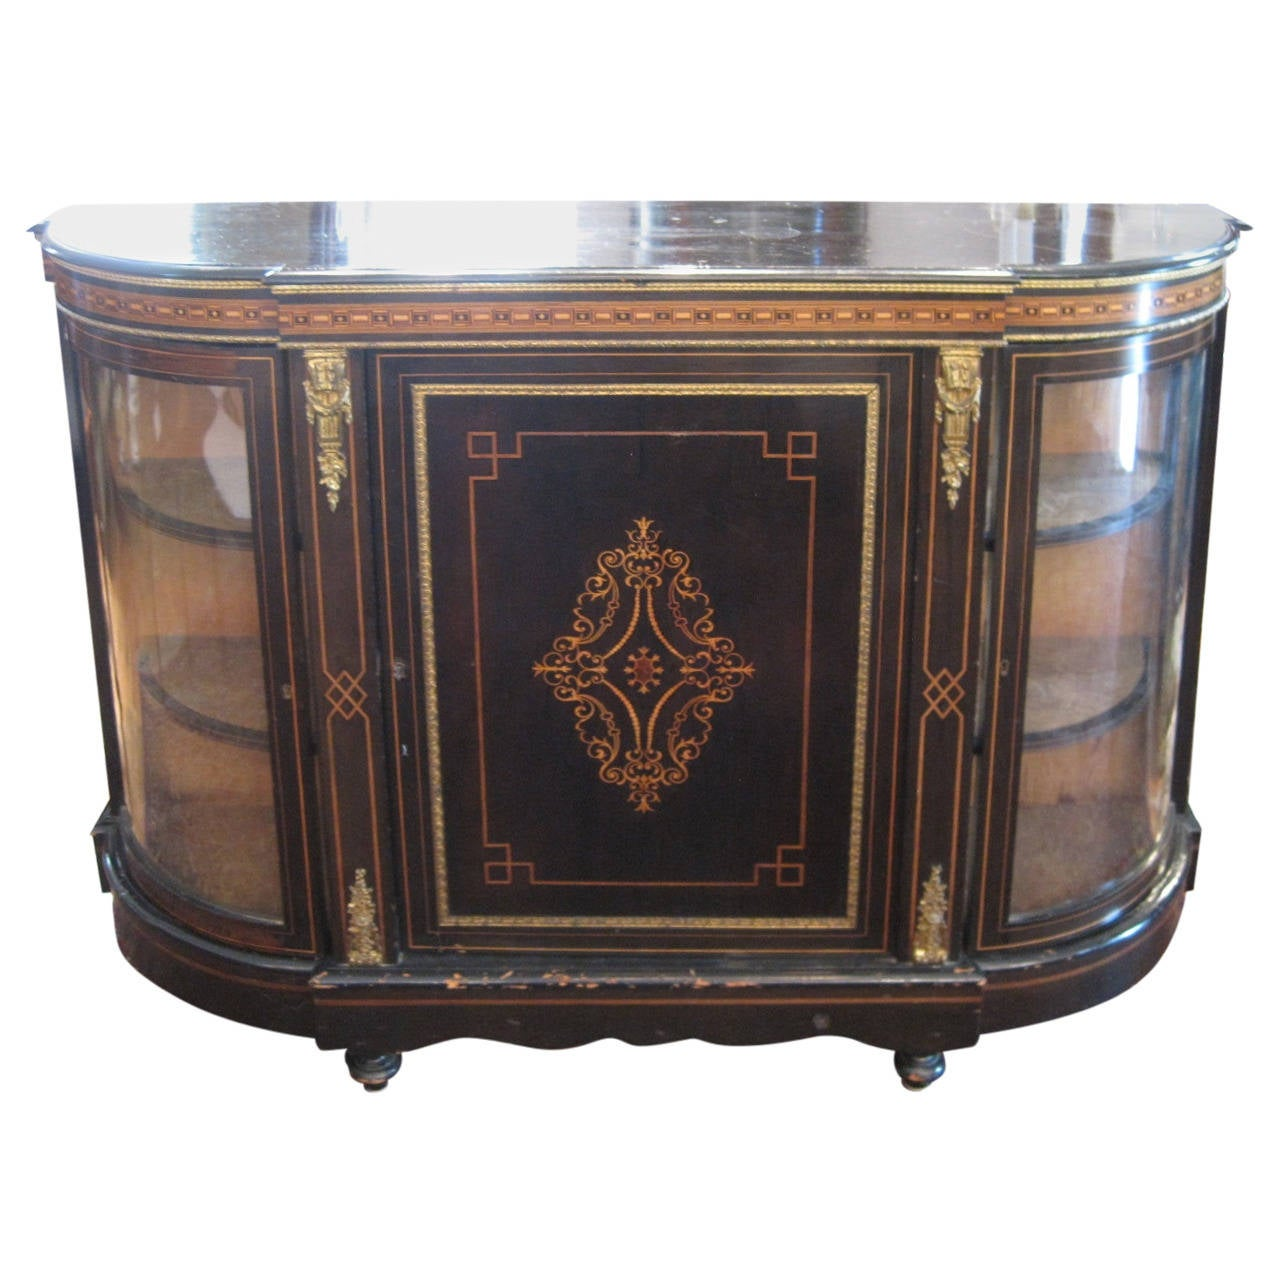 19th Century Inlaid English Sideboard or Buffet